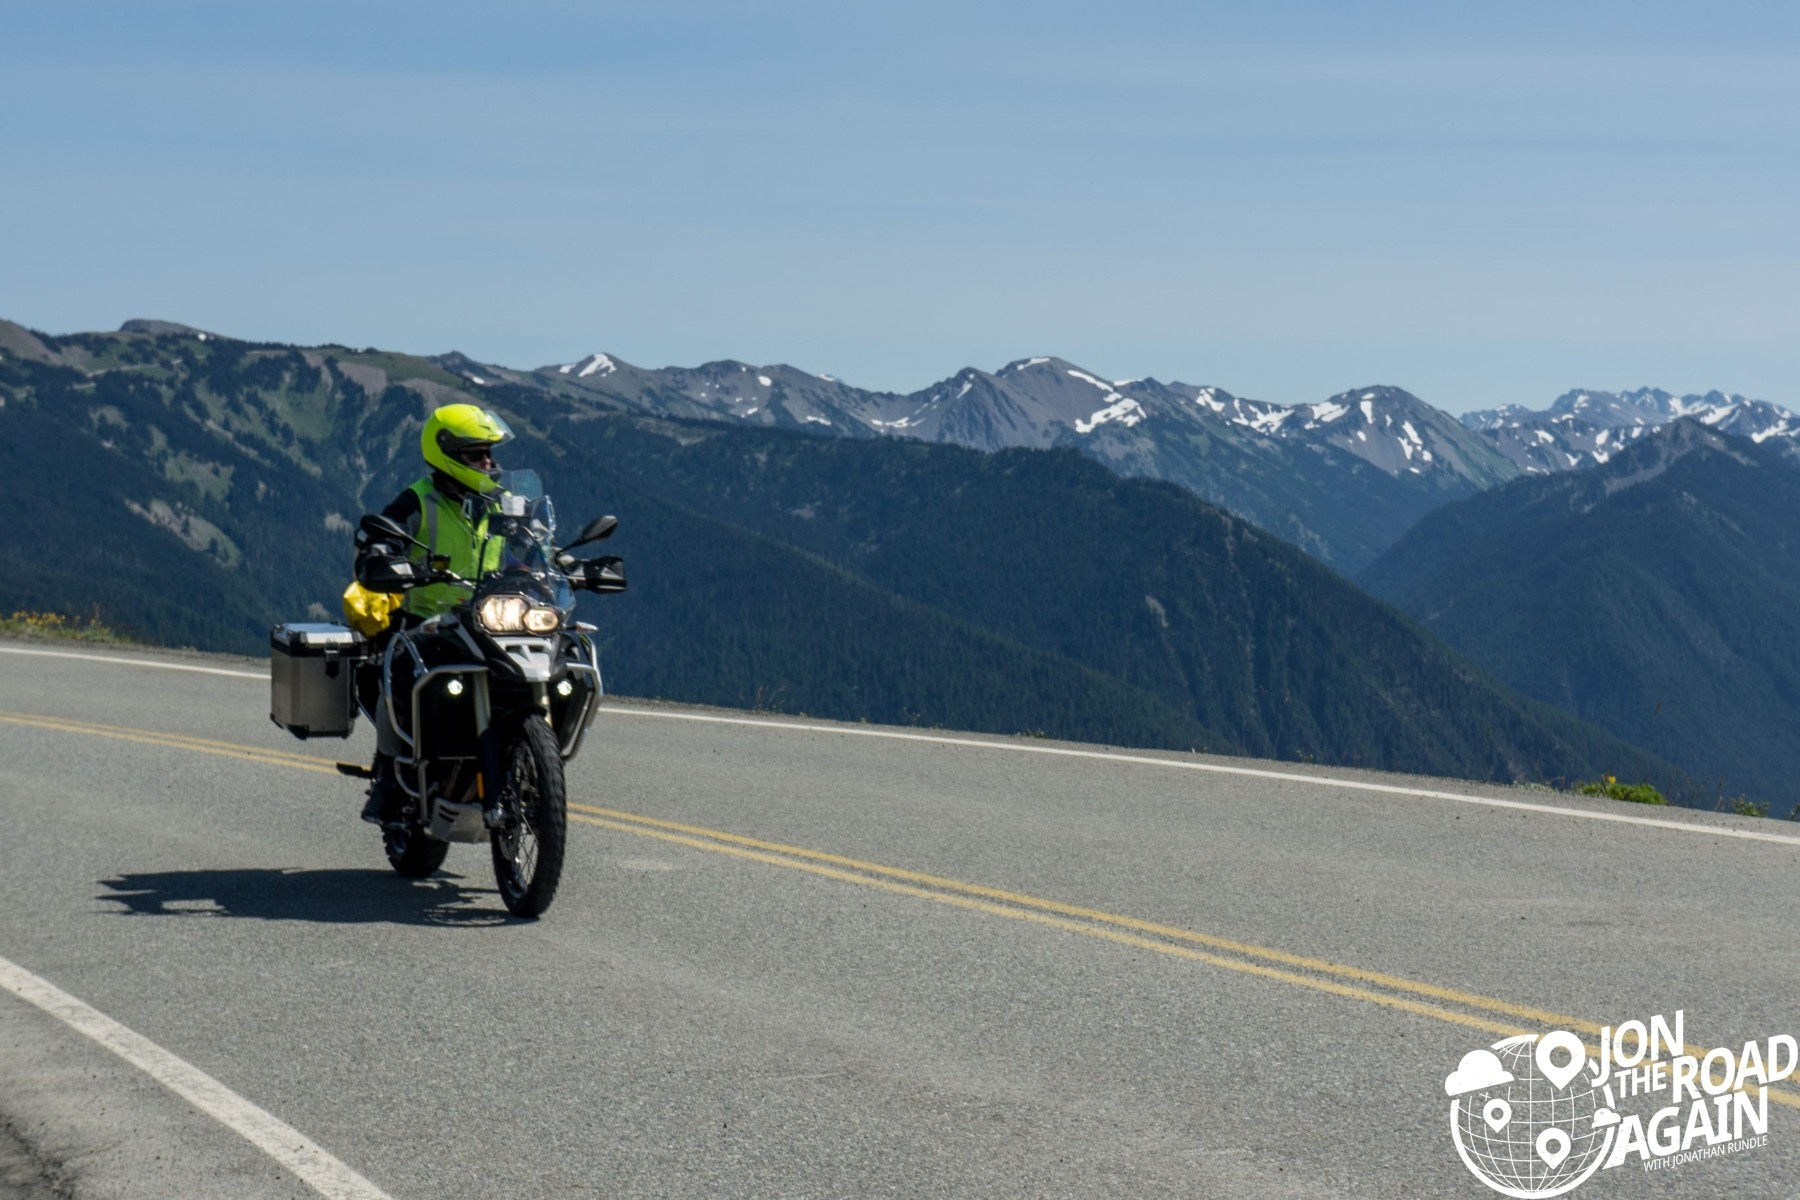 Matt with Hurricane Ridge